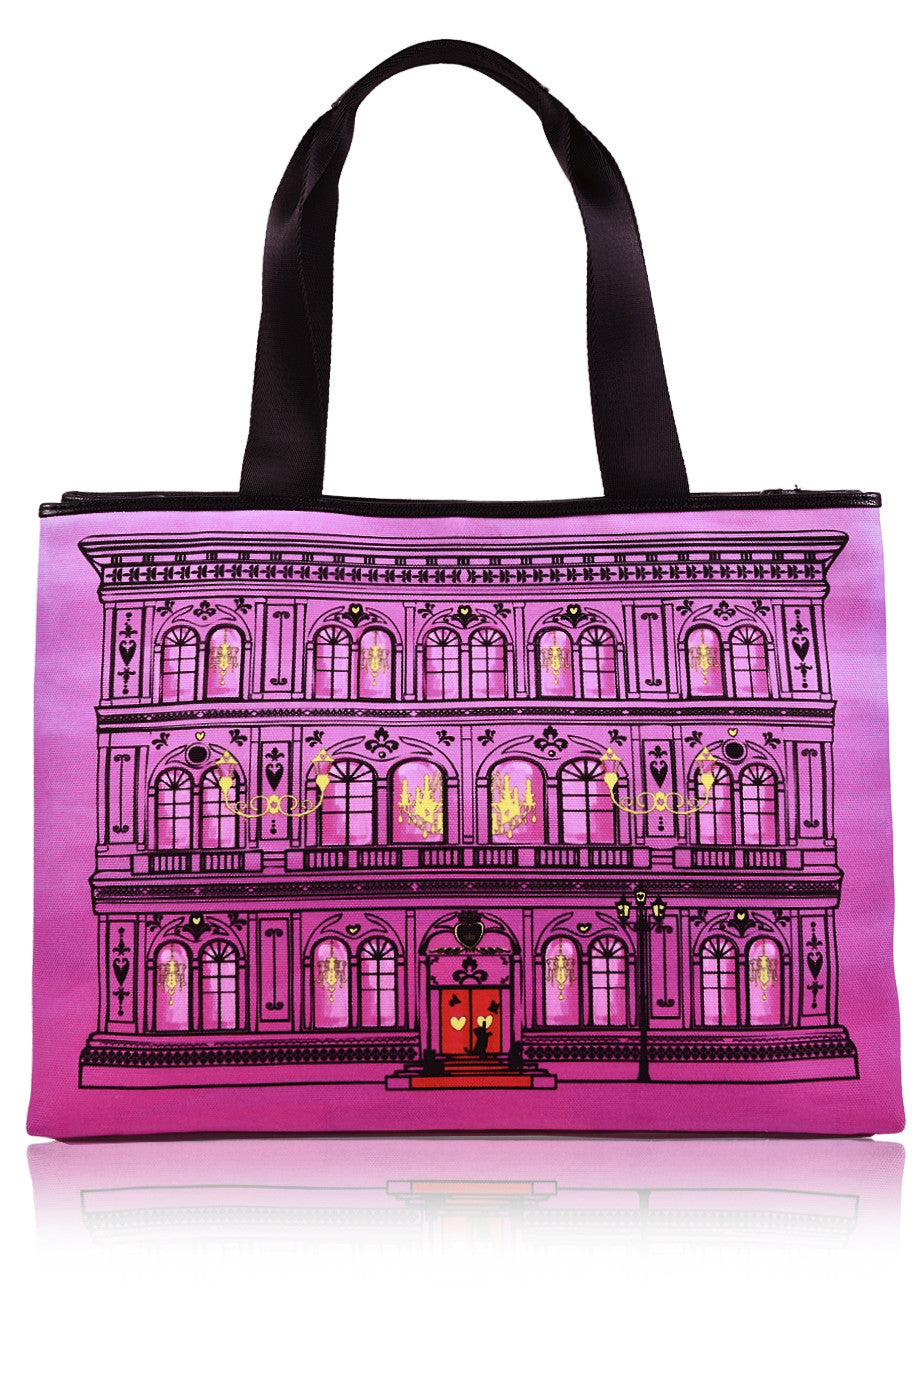 LOVE MOSCHINO PALAZZO Ροζ Τσάντα – PRET-A-BEAUTE.GR 8be19af4f50